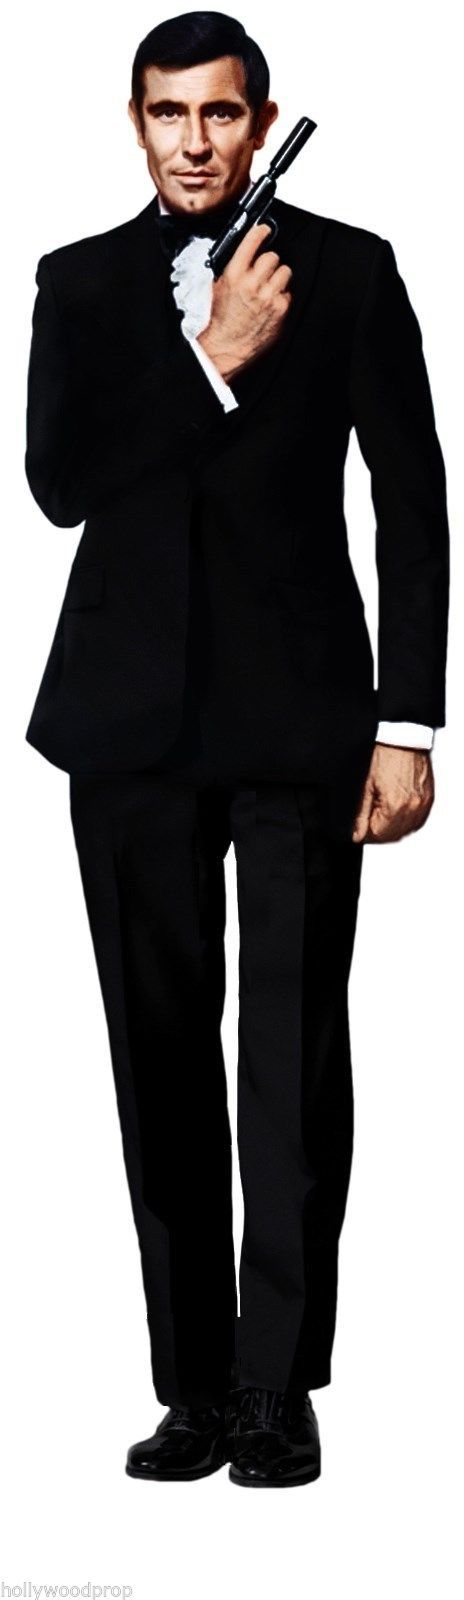 George Lazenby James Bond 007 Lifesize Cardboard Standup Standee ...